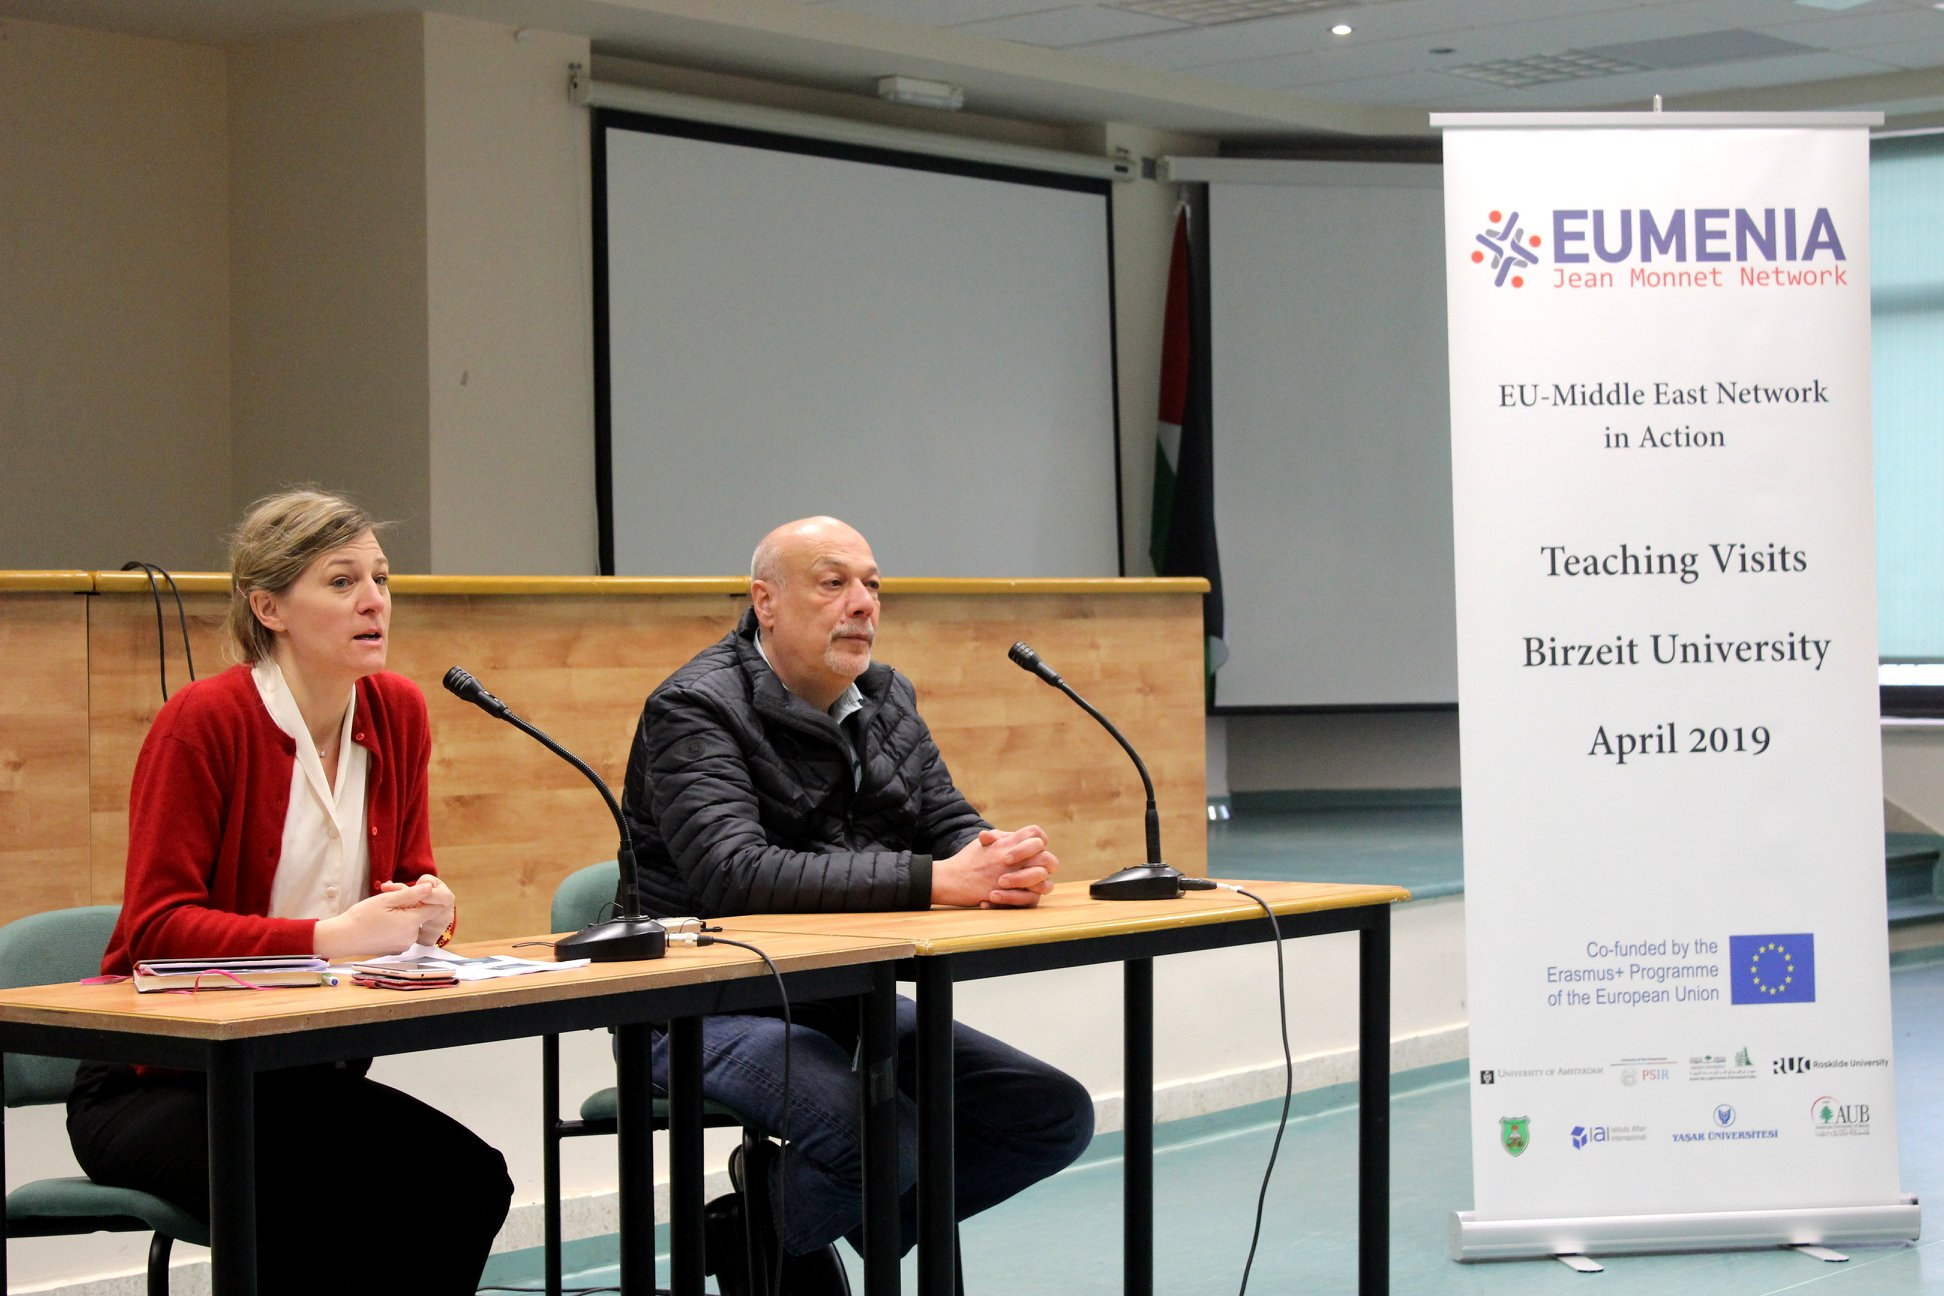 EUMENIA teaching visits were launched!